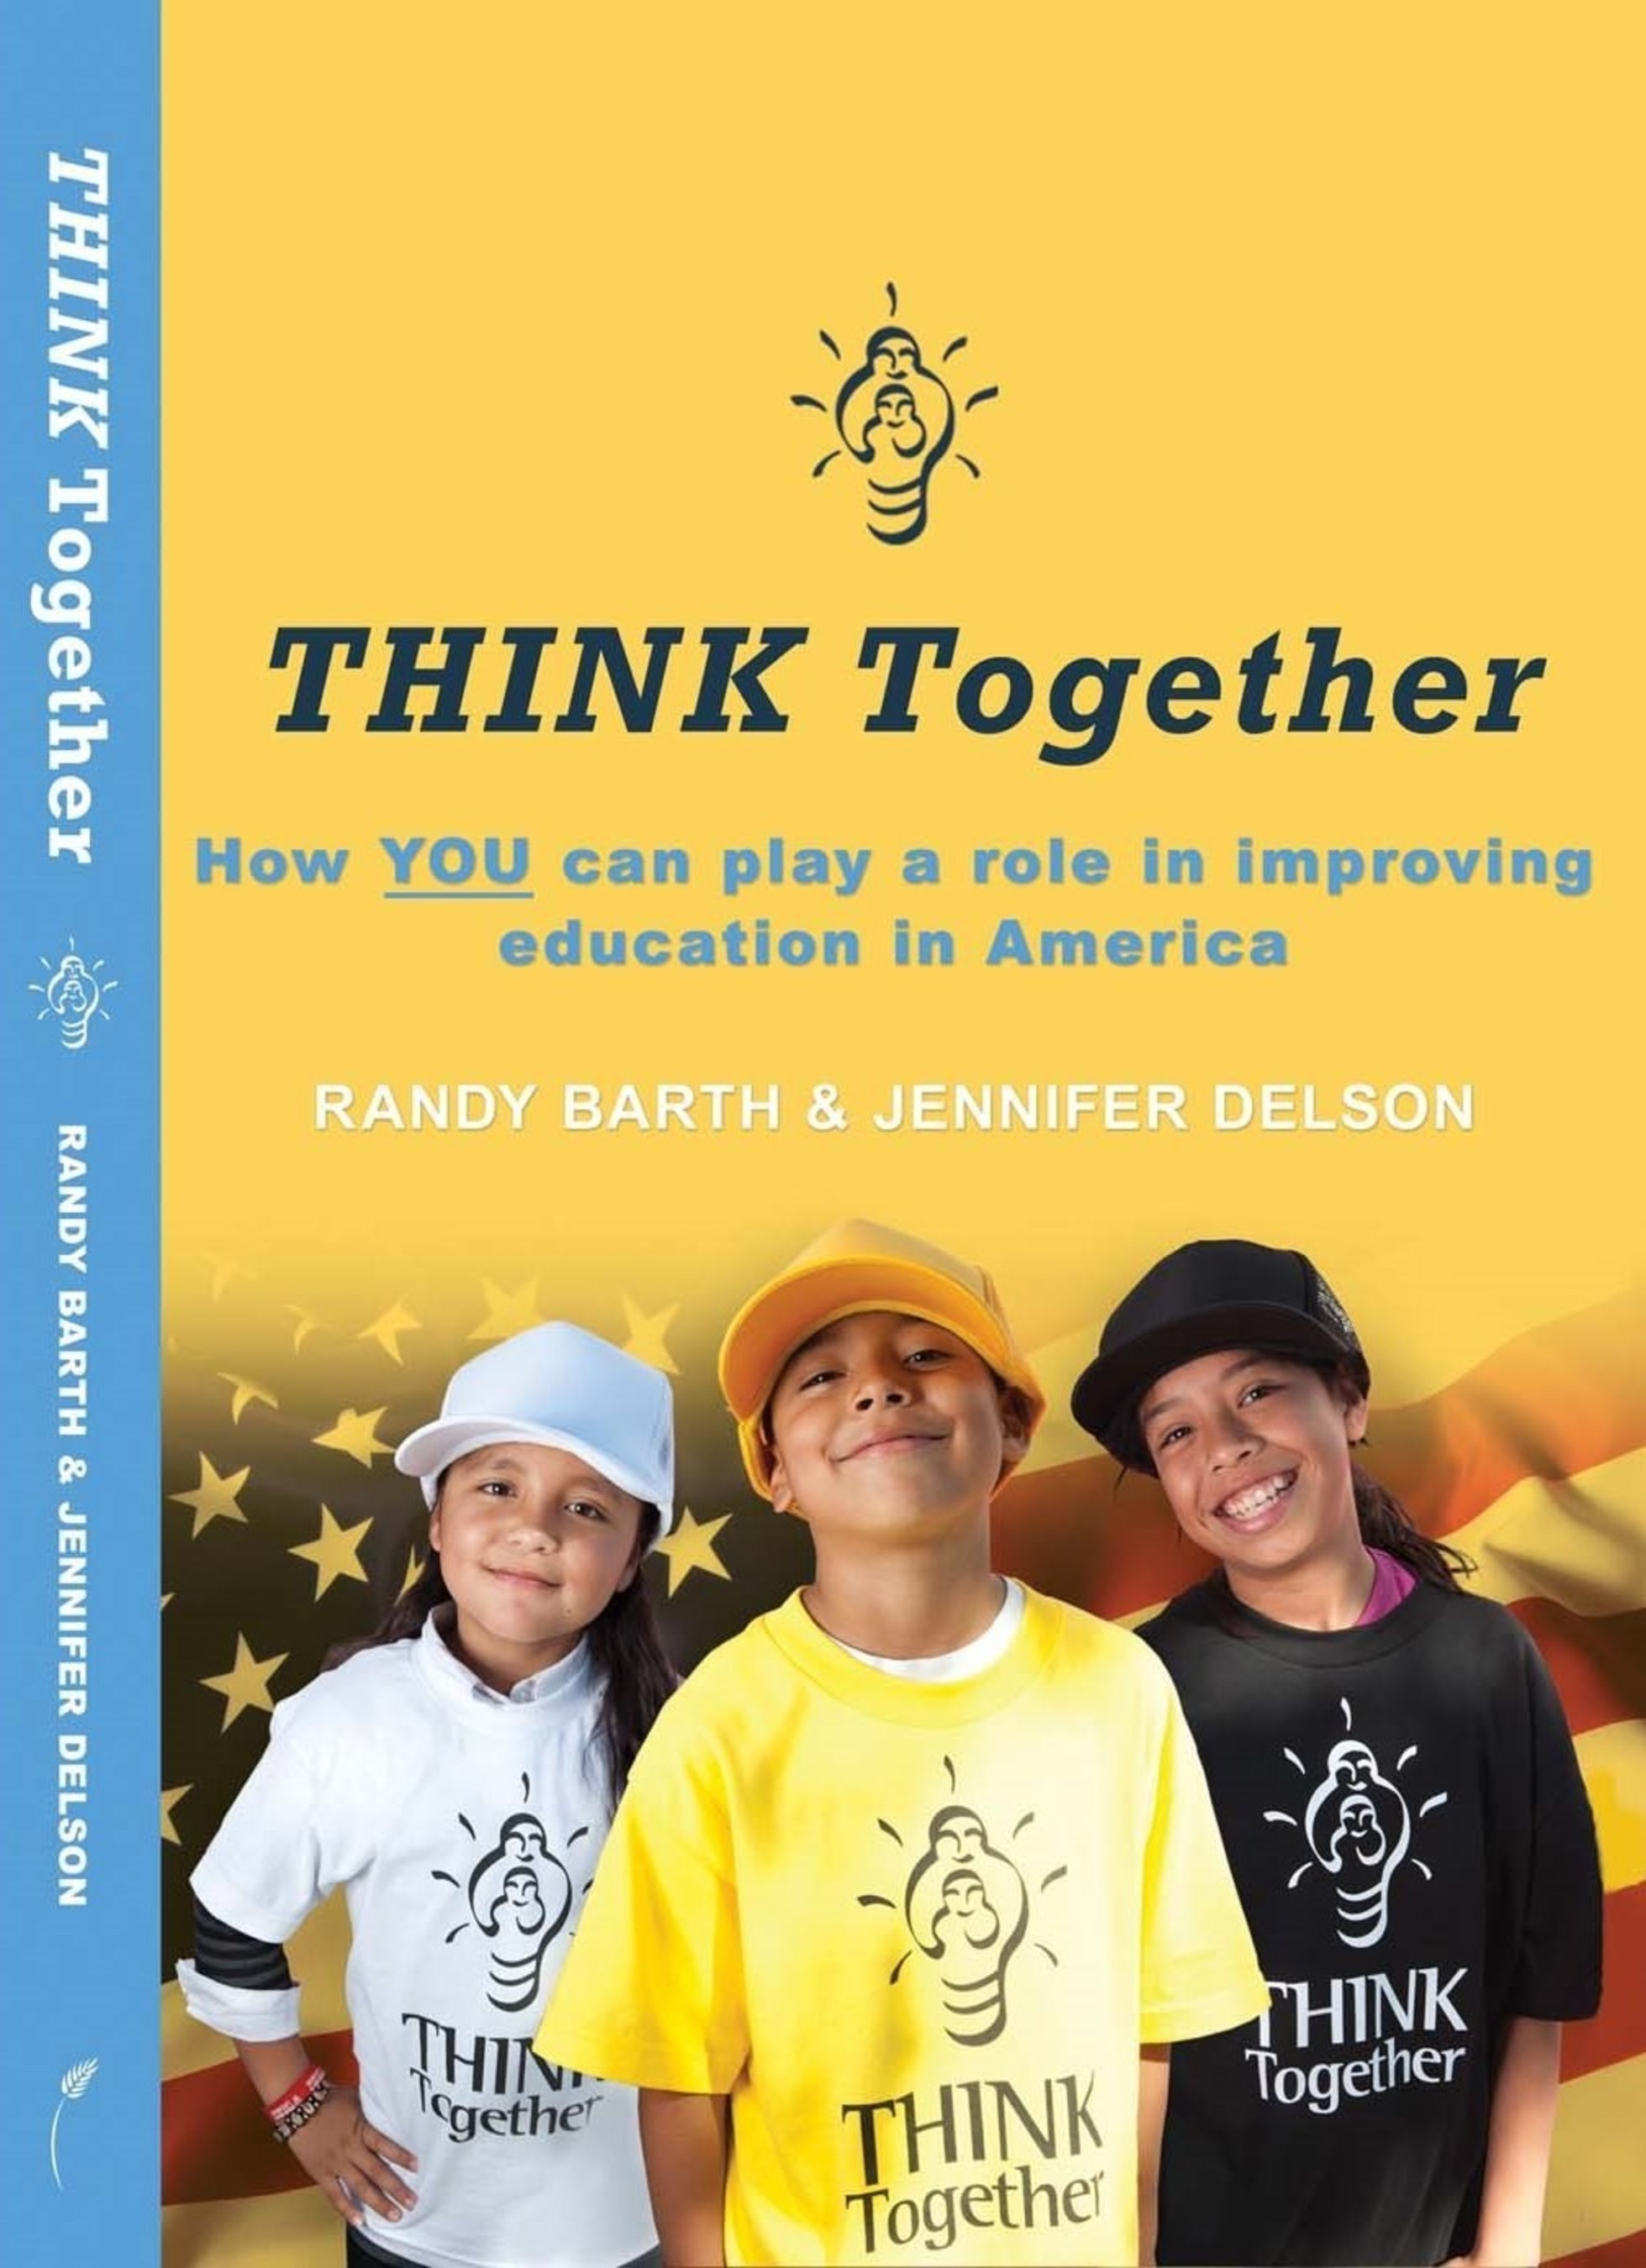 New THINK Together Book Offers Lesson Plan To Improve Public Education